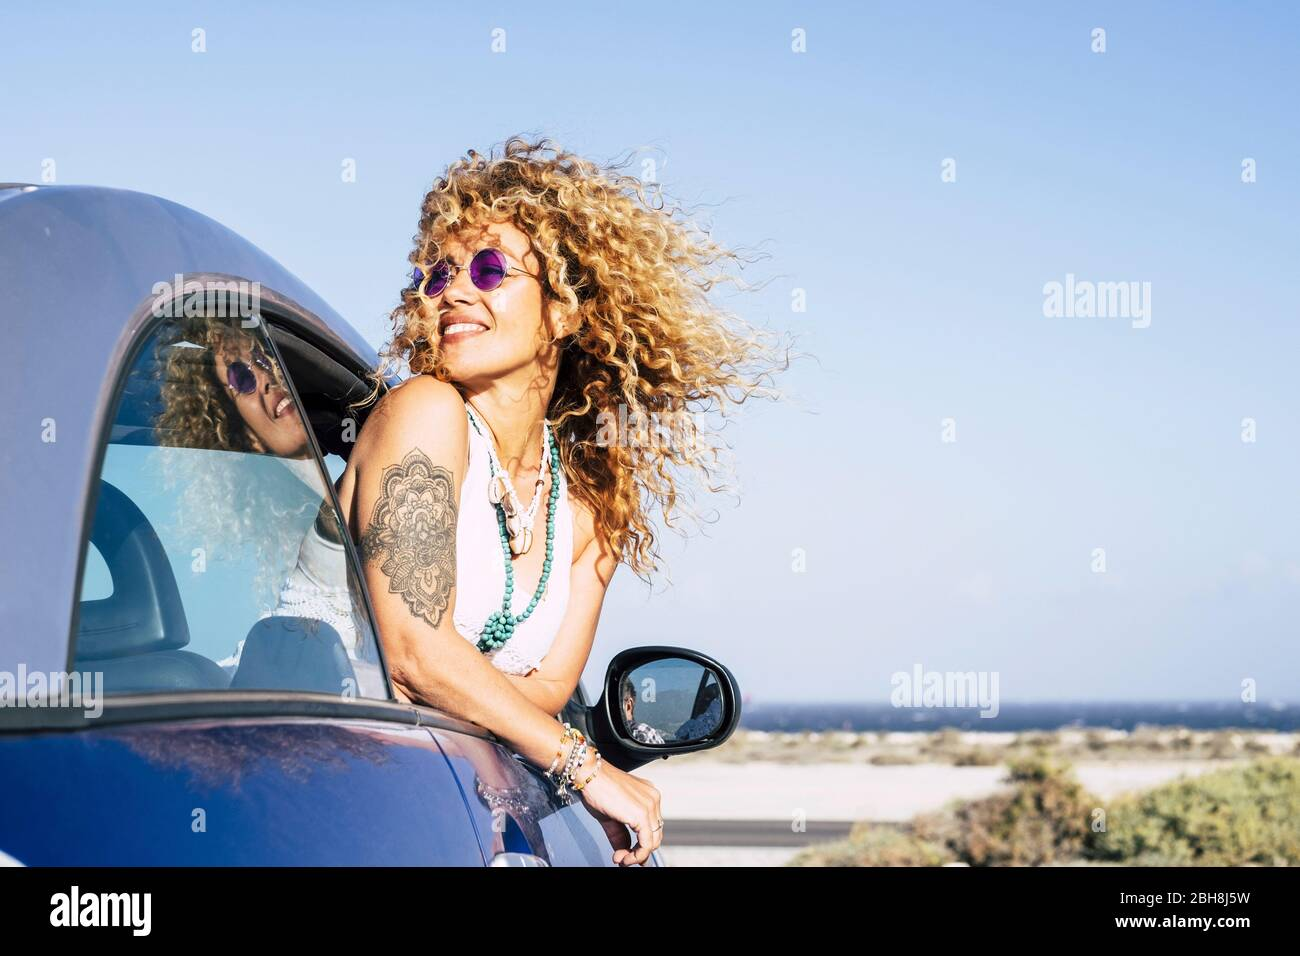 Beautiful cheerful happy caucasian woman outside the car with wind in curly long blonde hair - attractive people enjoying the freedom in outdoor coastline ocean vacation place Stock Photo